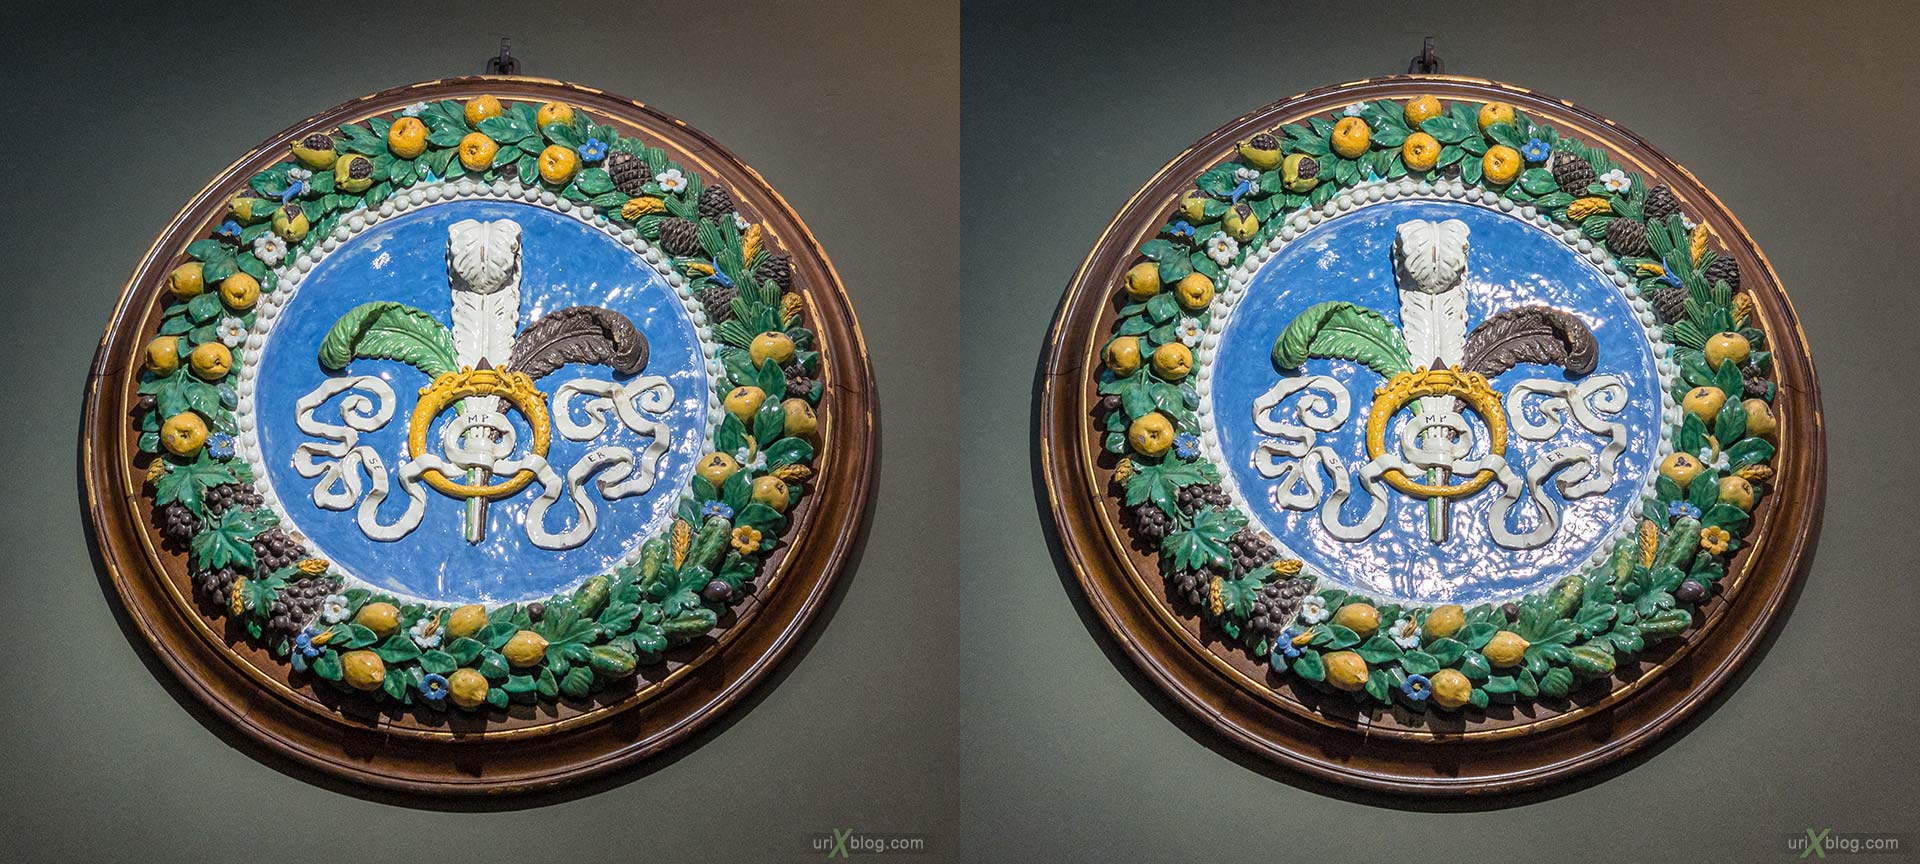 coat of arms, crest, glazed terracotta, tondo, garland, Uffizi Gallery, Contini Bonacossi Collection, Santi Buglioni, Florence, Firenze, Italy, 3D, stereo pair, cross-eyed, crossview, cross view stereo pair, stereoscopic